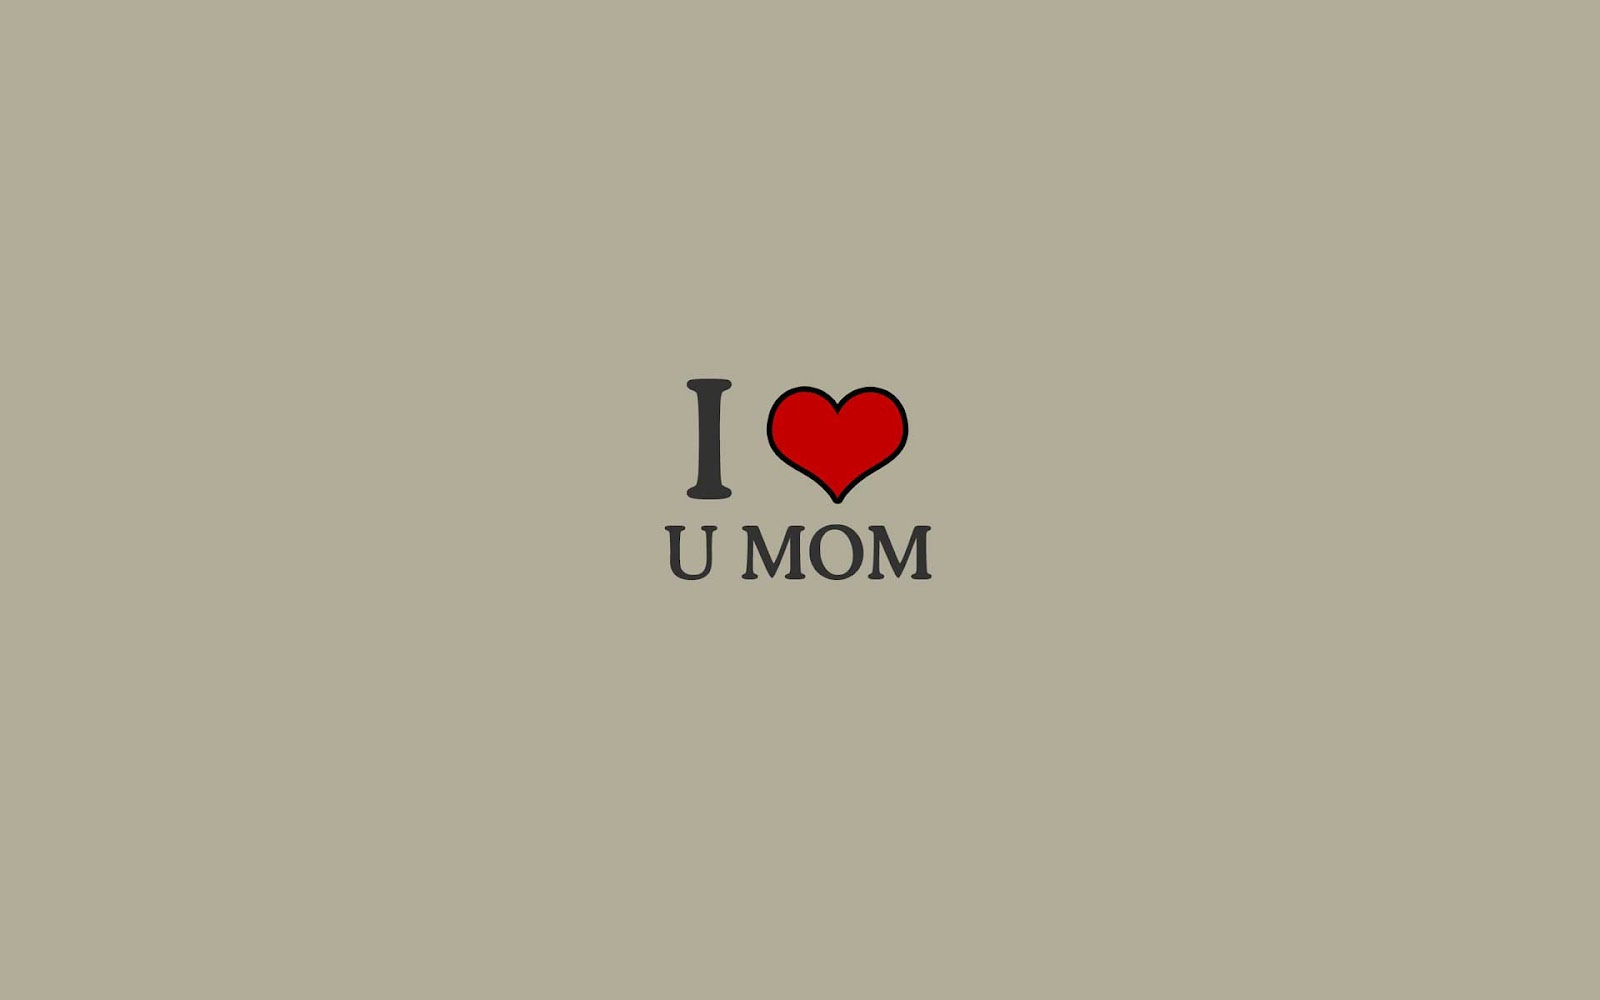 Wallpaper I Love You Mom : I Love You Mom Wallpapers Free christian Wallpapers